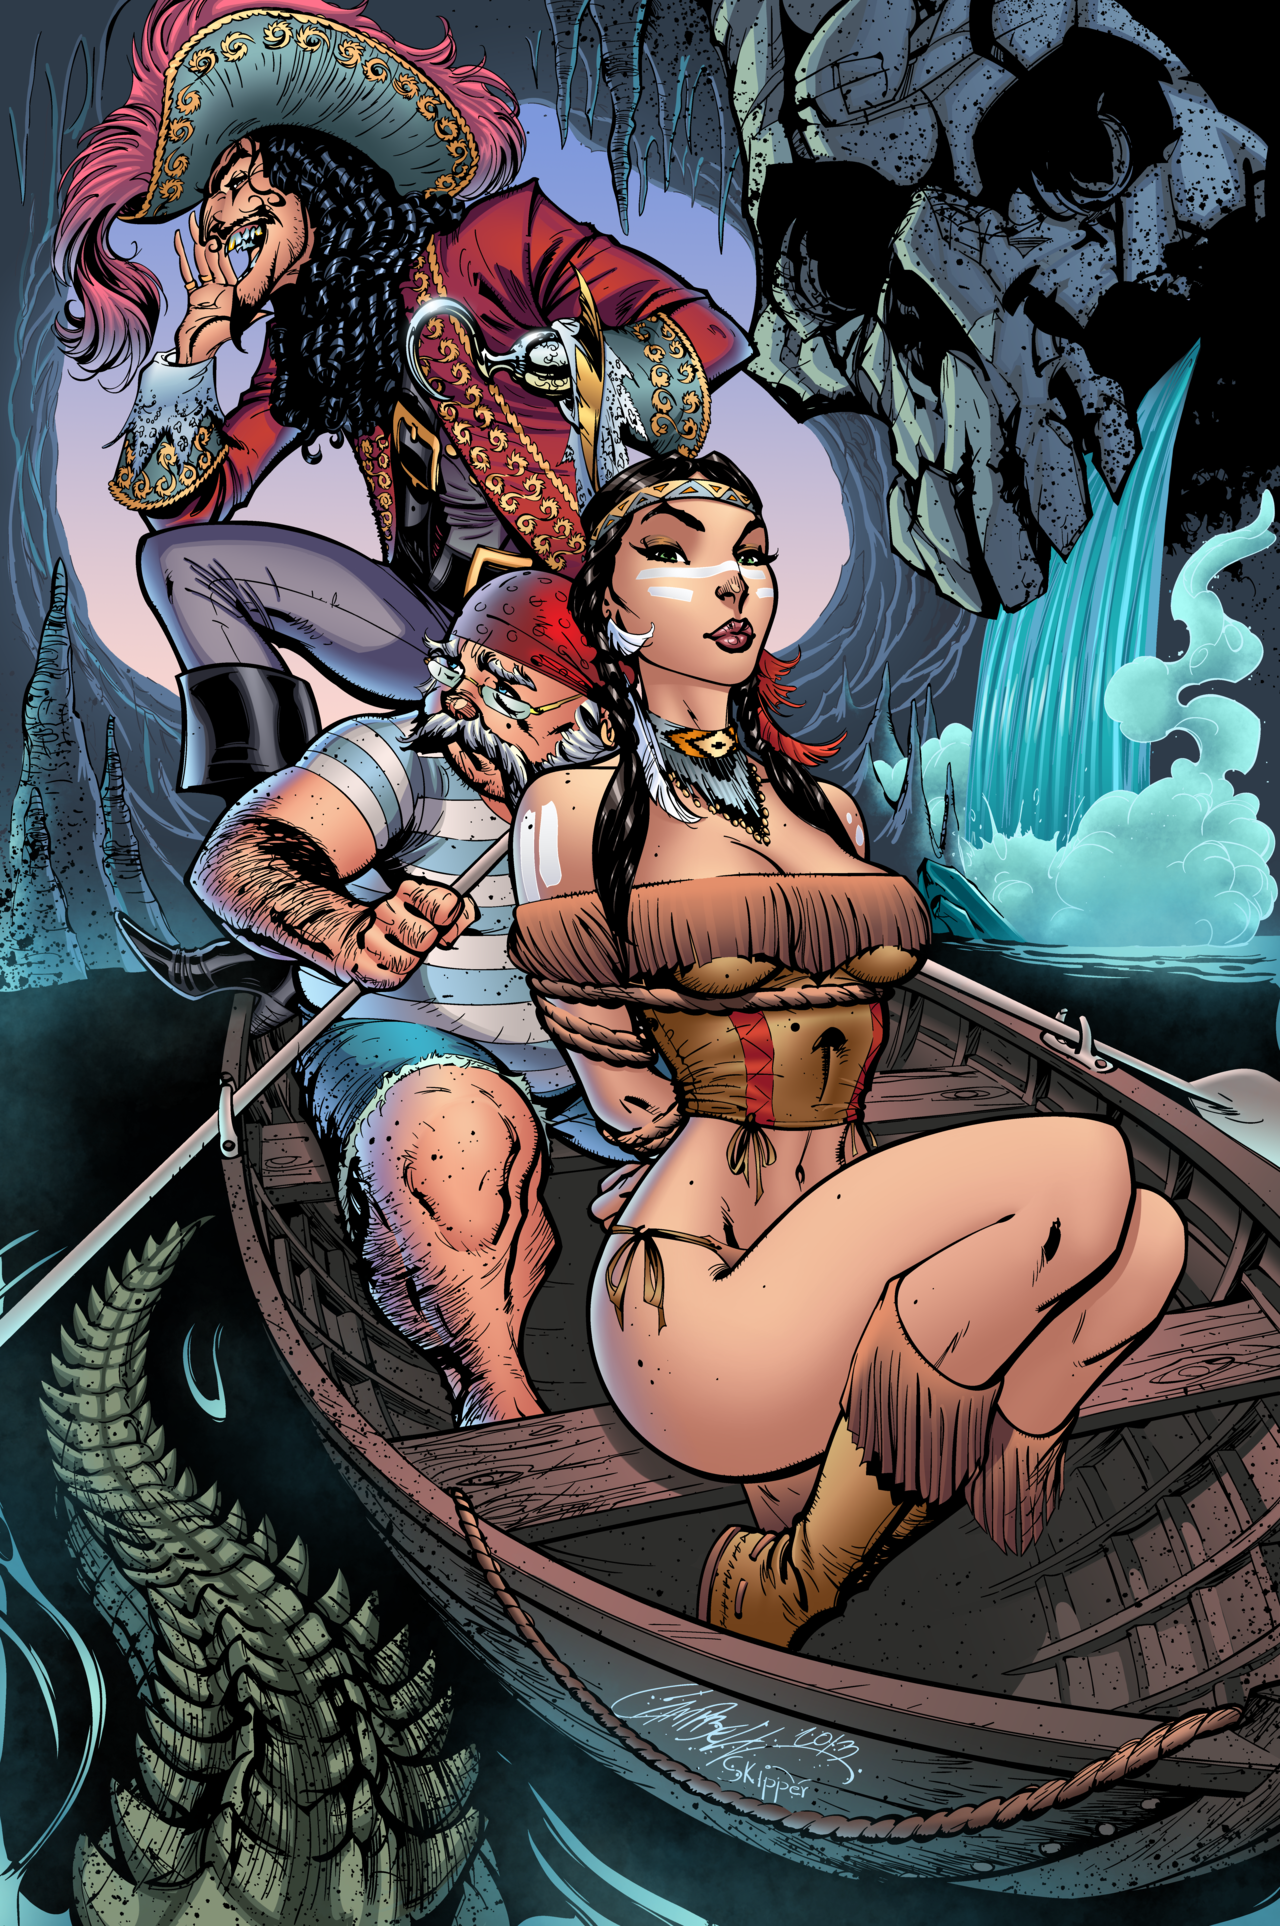 Come and get her, Peter Pan! - pencils by J. Scott Campbell, inks & colors by J-Skipper